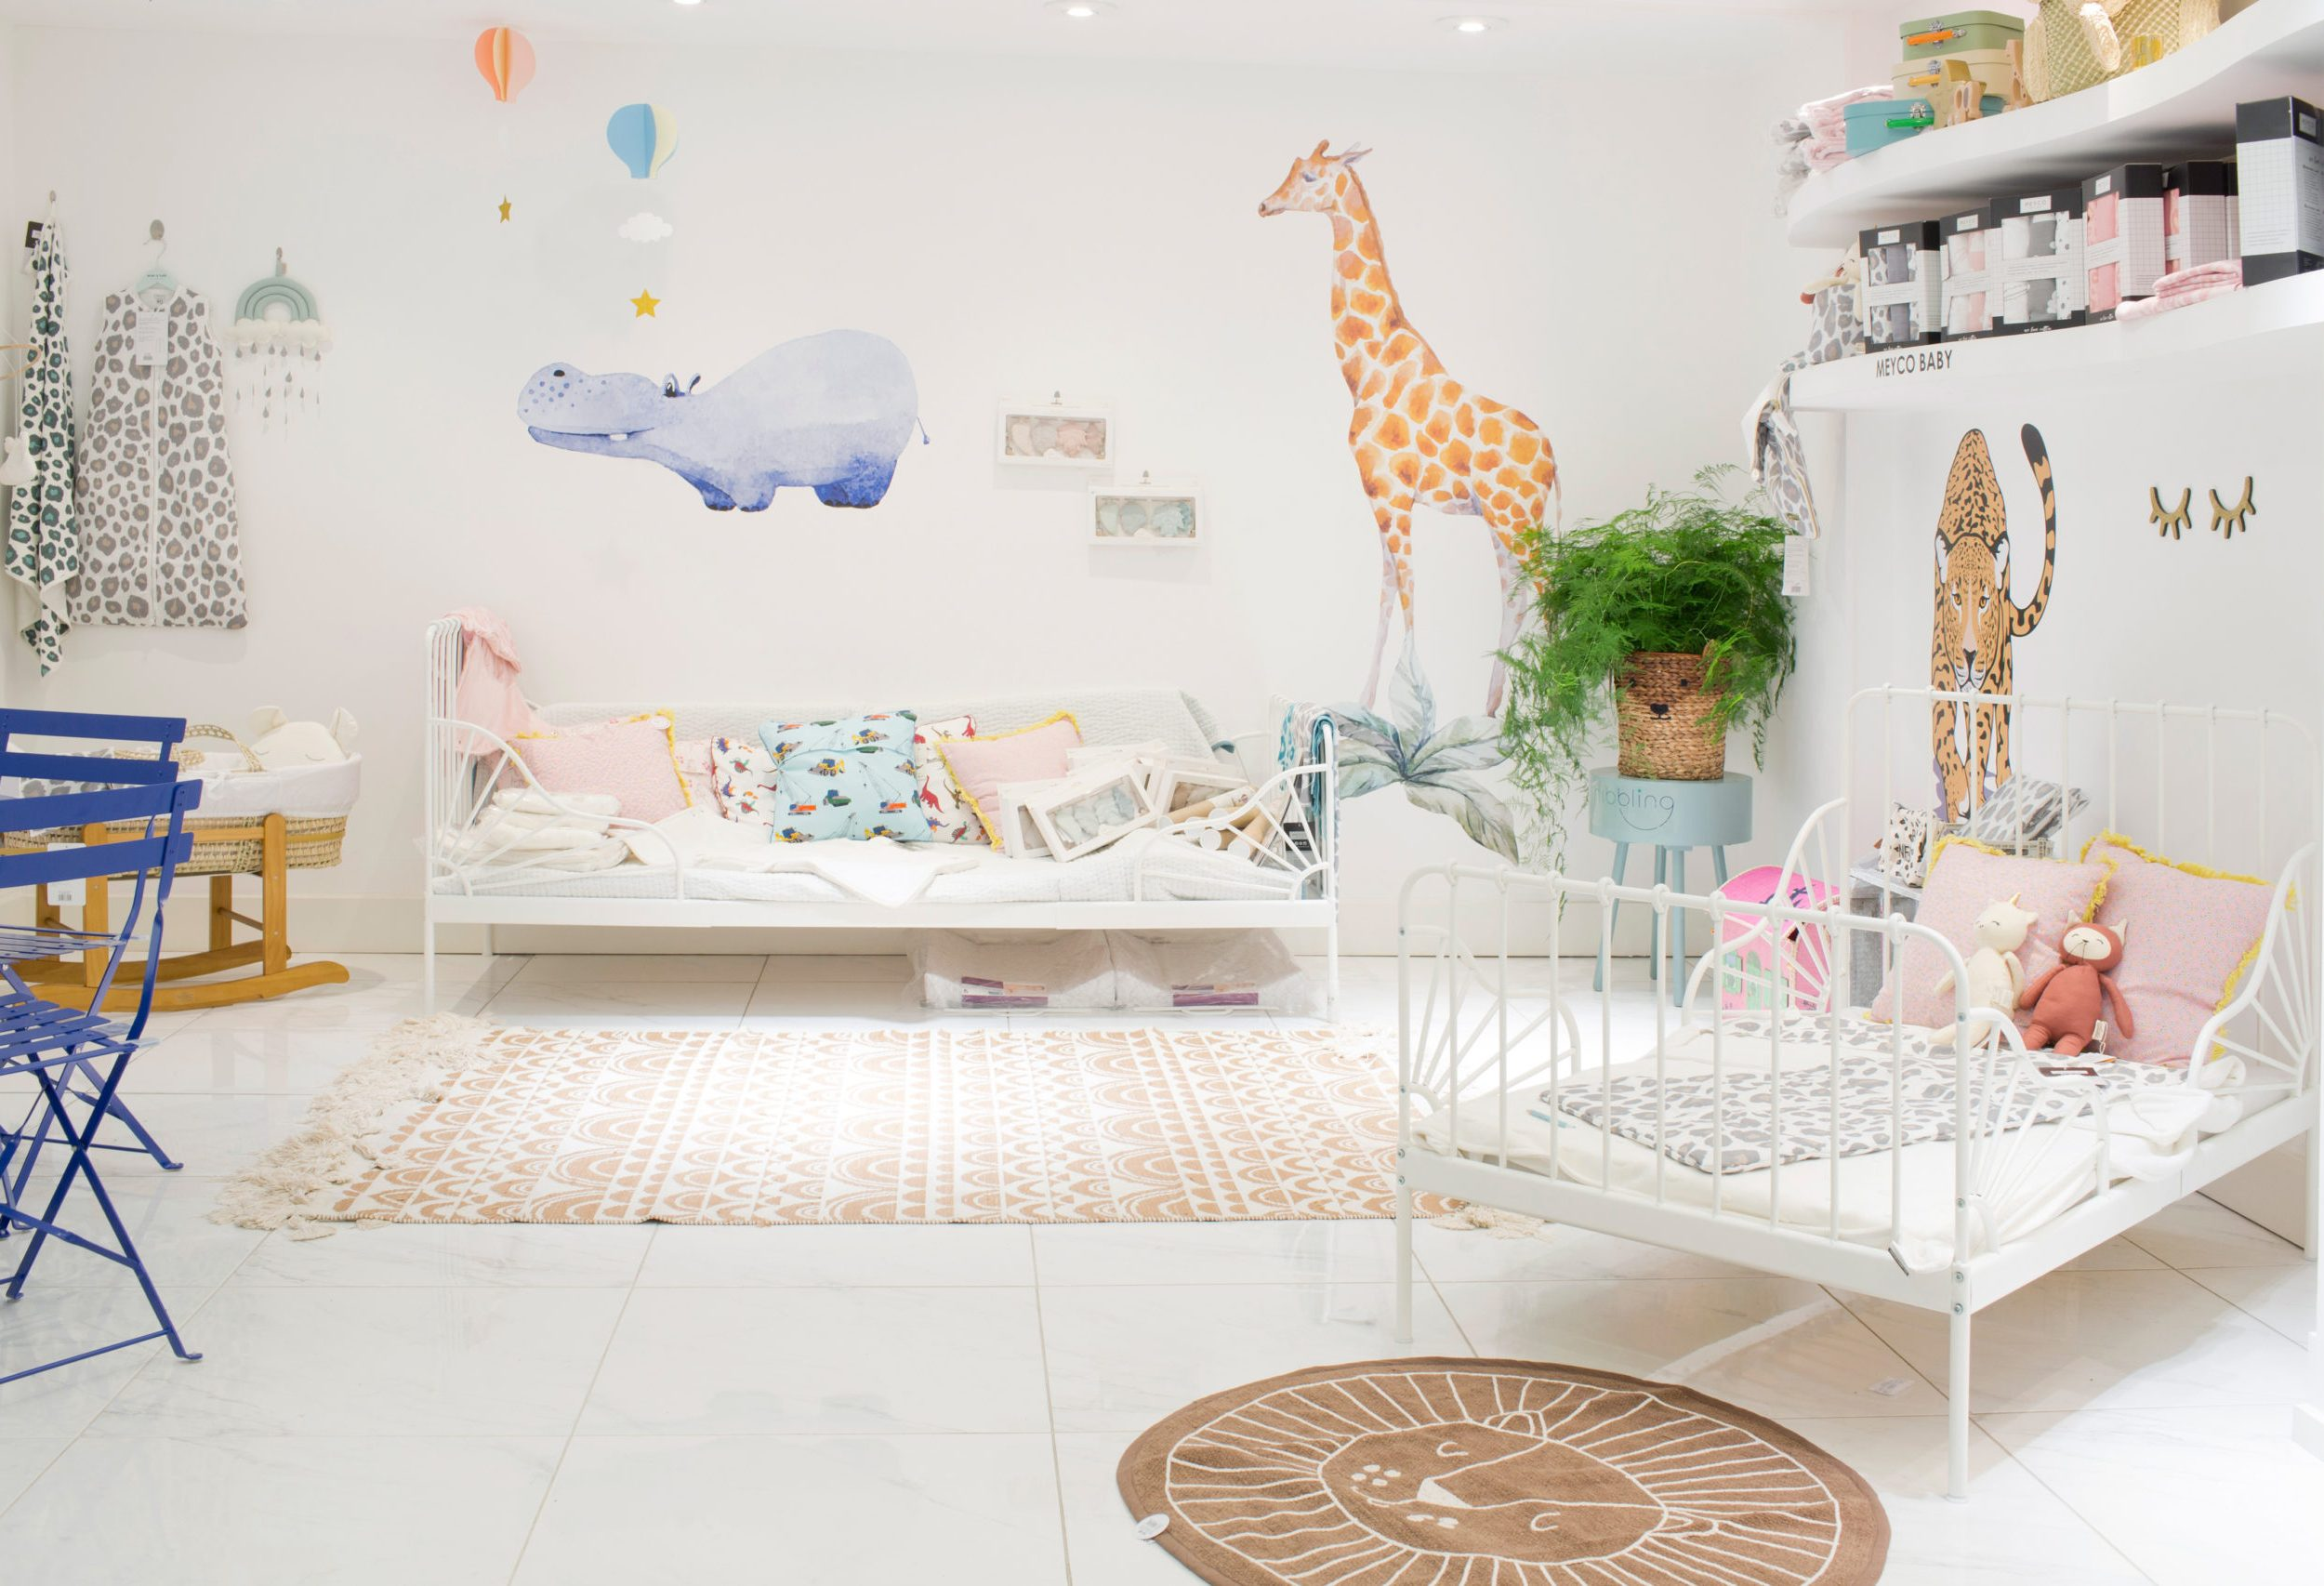 Children's bedroom furniture and wall art of hippo and giraffe